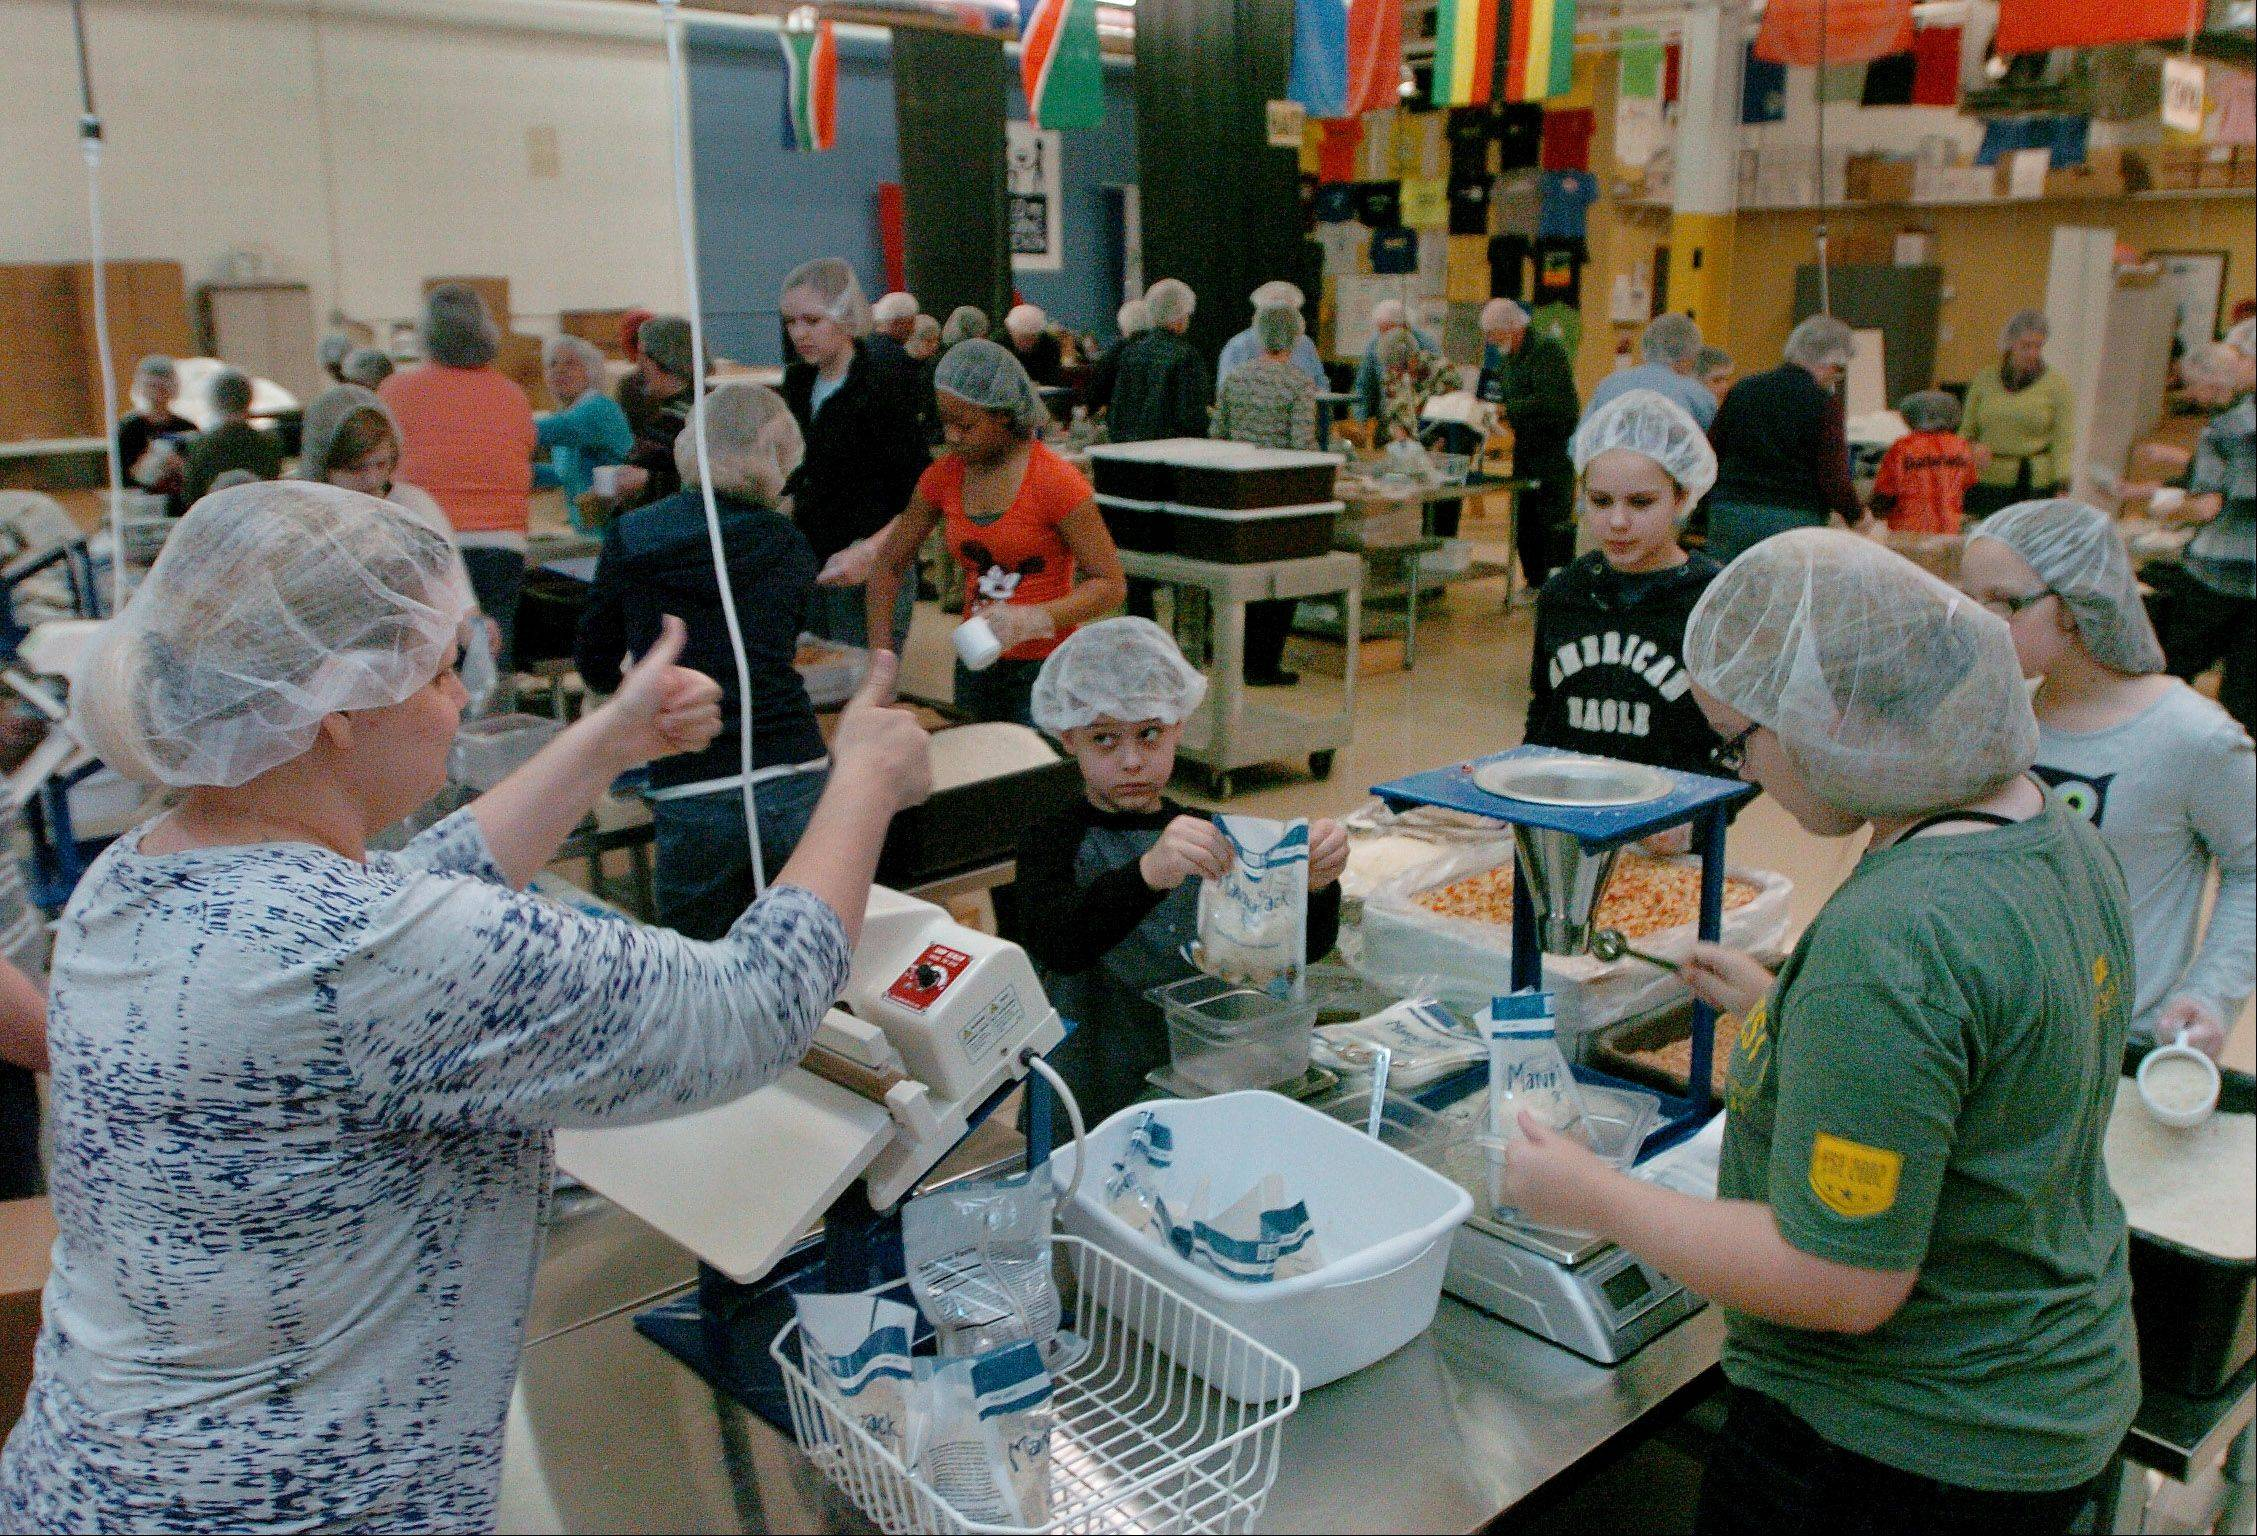 Sara Green of Elgin, left, gives a thumbs-up to her kids from left, Elijah, Emma, Hannah Green, along with Jessica Owens, while packing food at Feed My Starving Children in Schaumburg with the Fox Valley Home Schoolers.